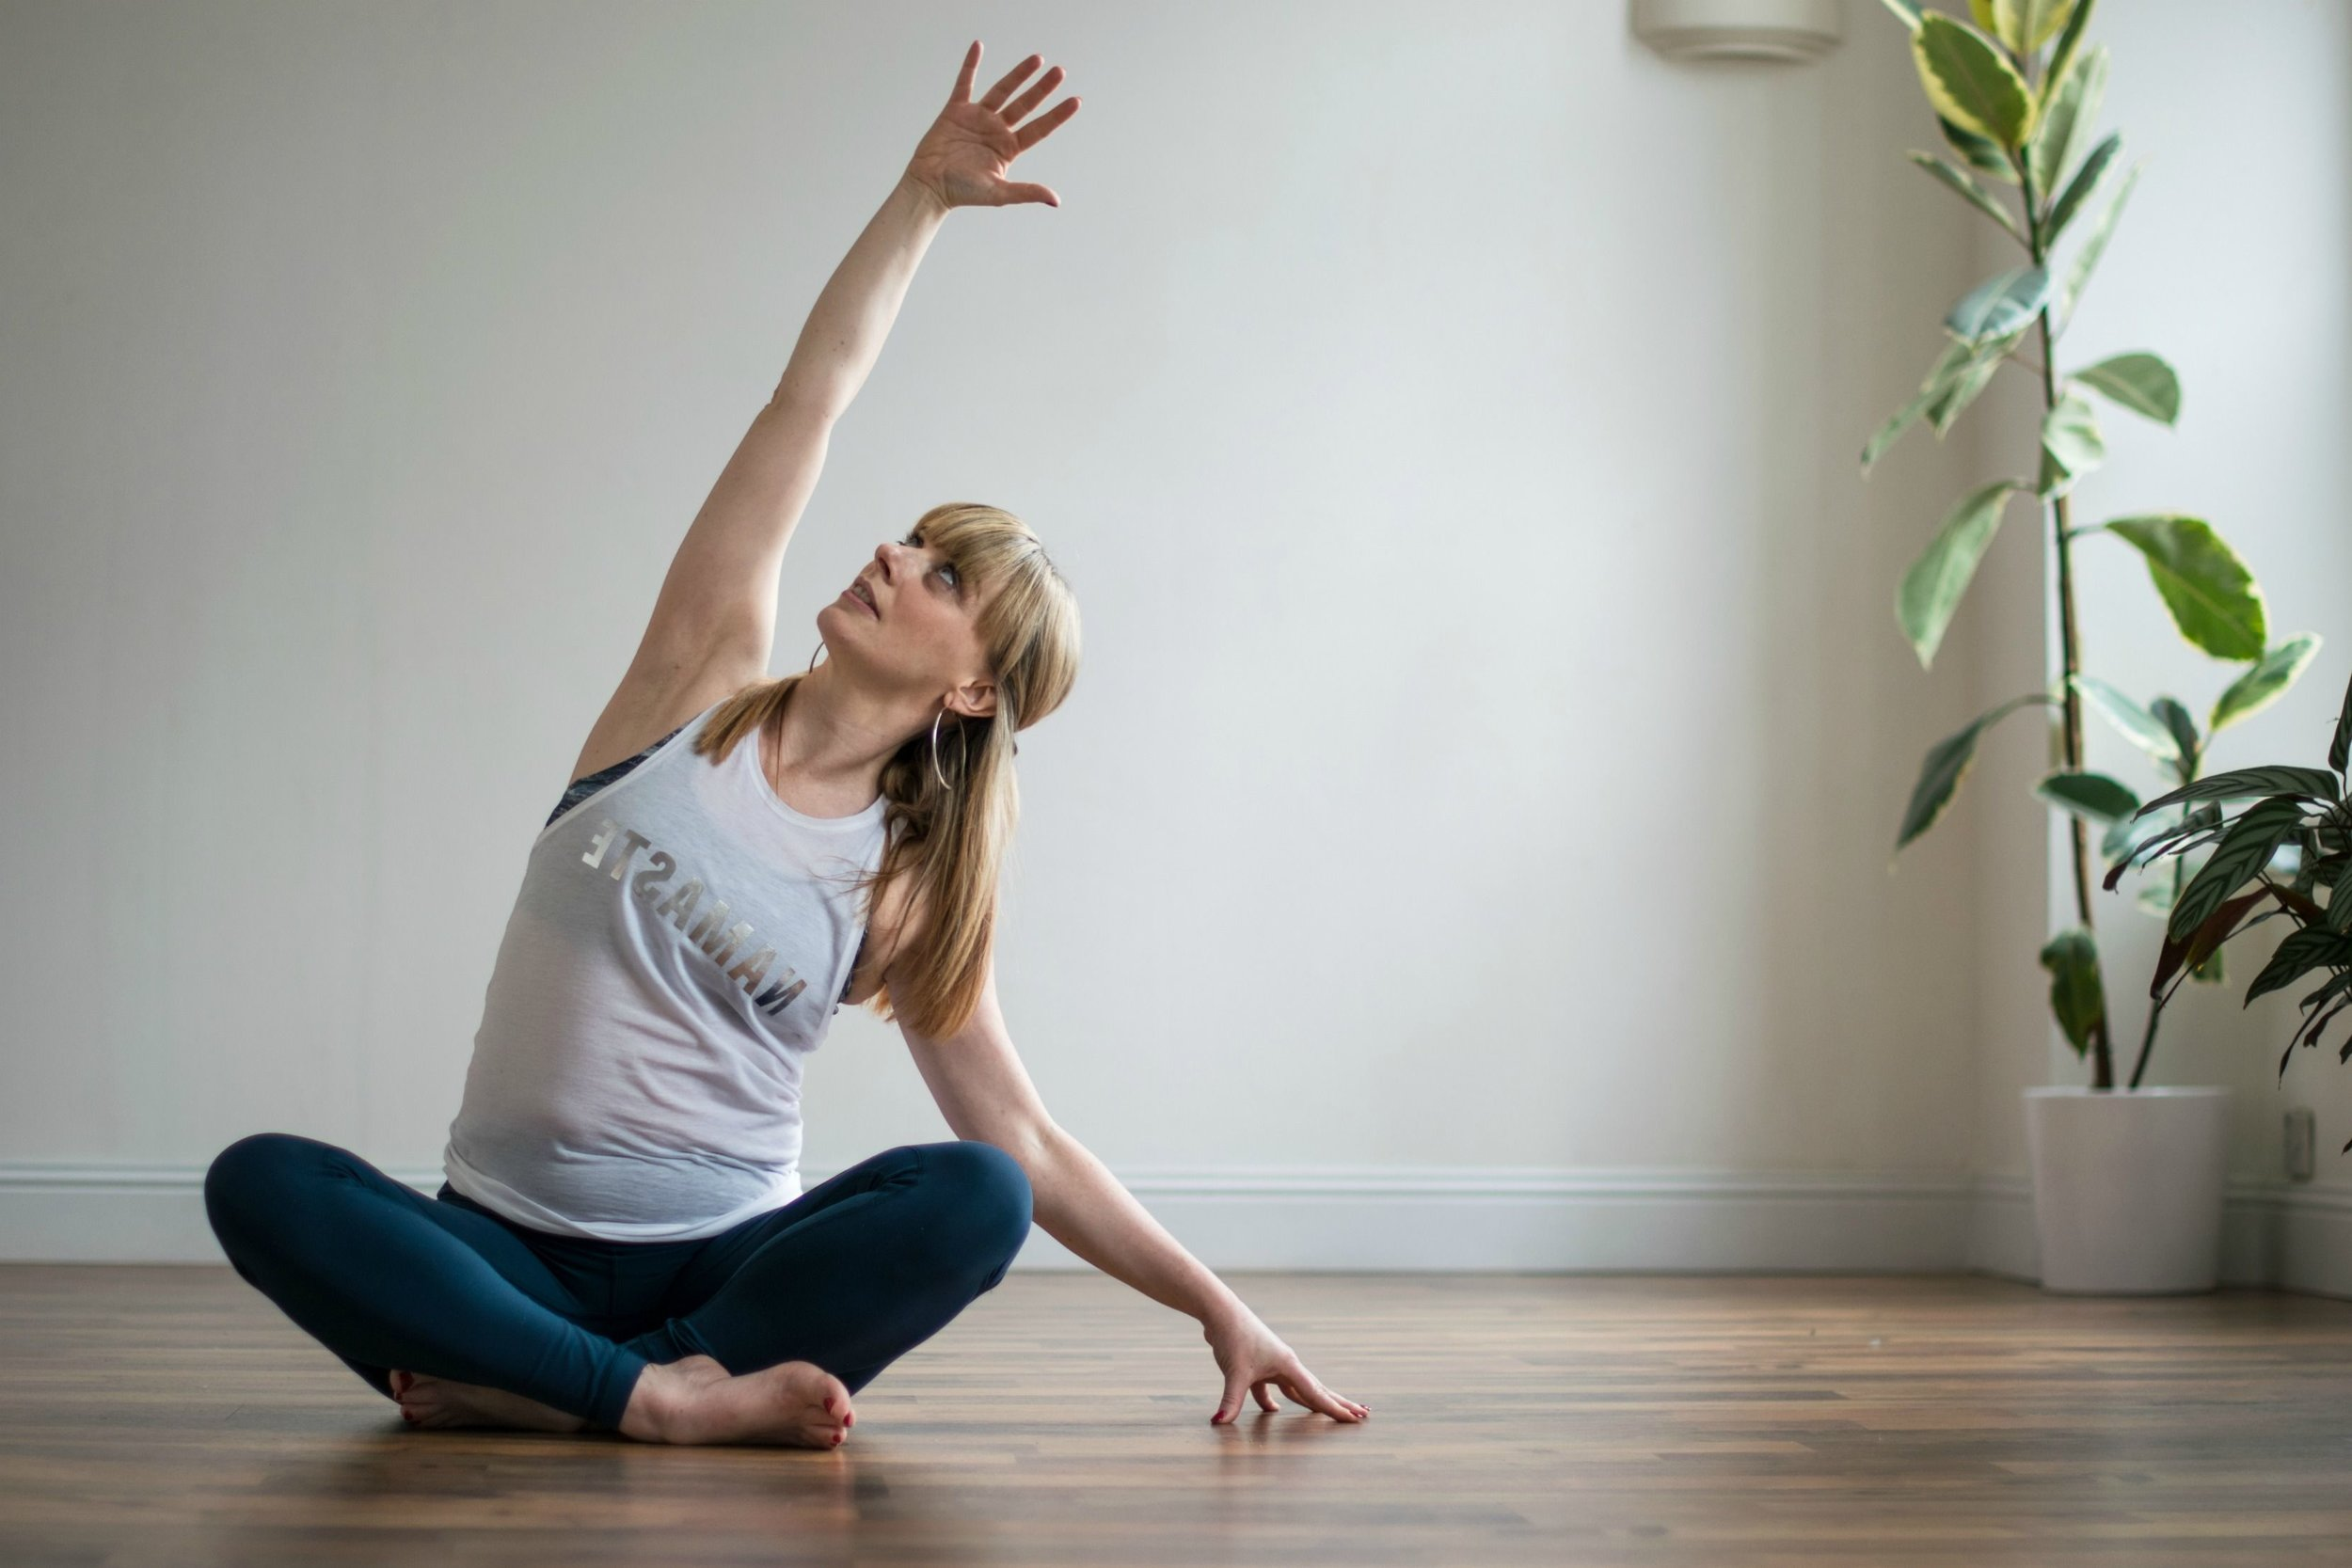 Michelle Lang Yoga Teacher in seated side bend